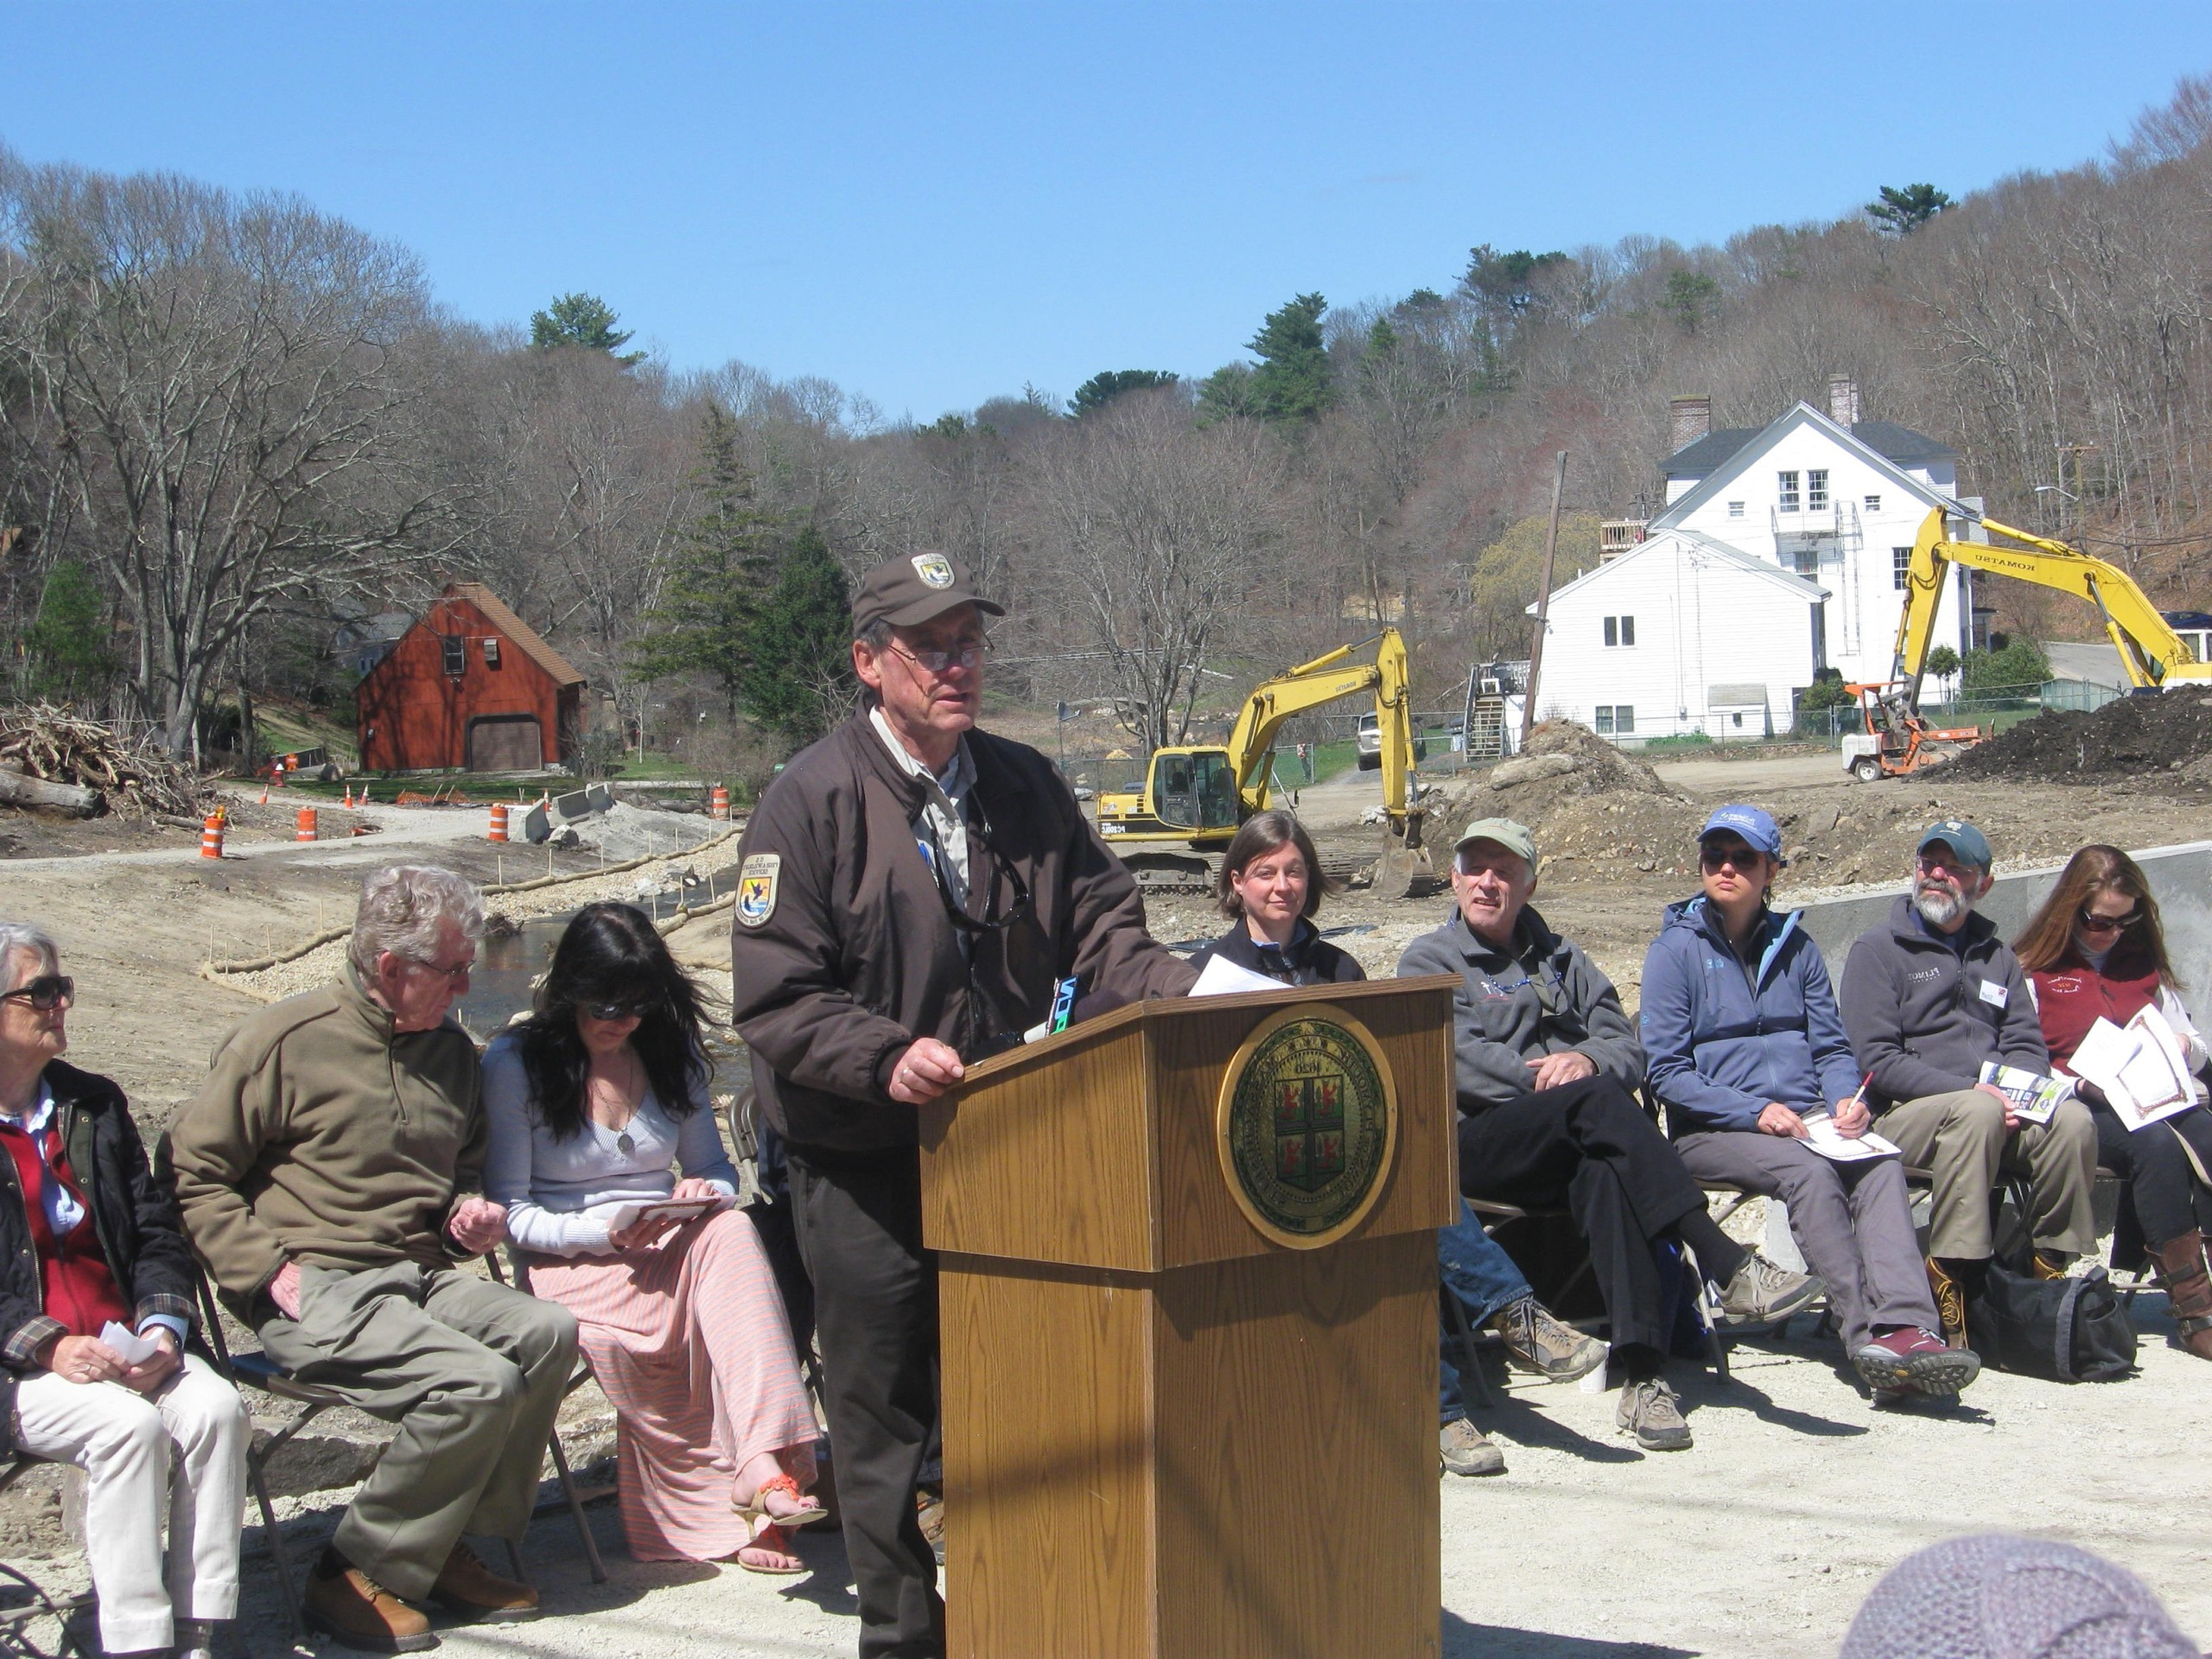 Derleth delivering a speech at the Plymco Dam Removal Dedication Event (2015) Credit: MA Dept. Fish and Game